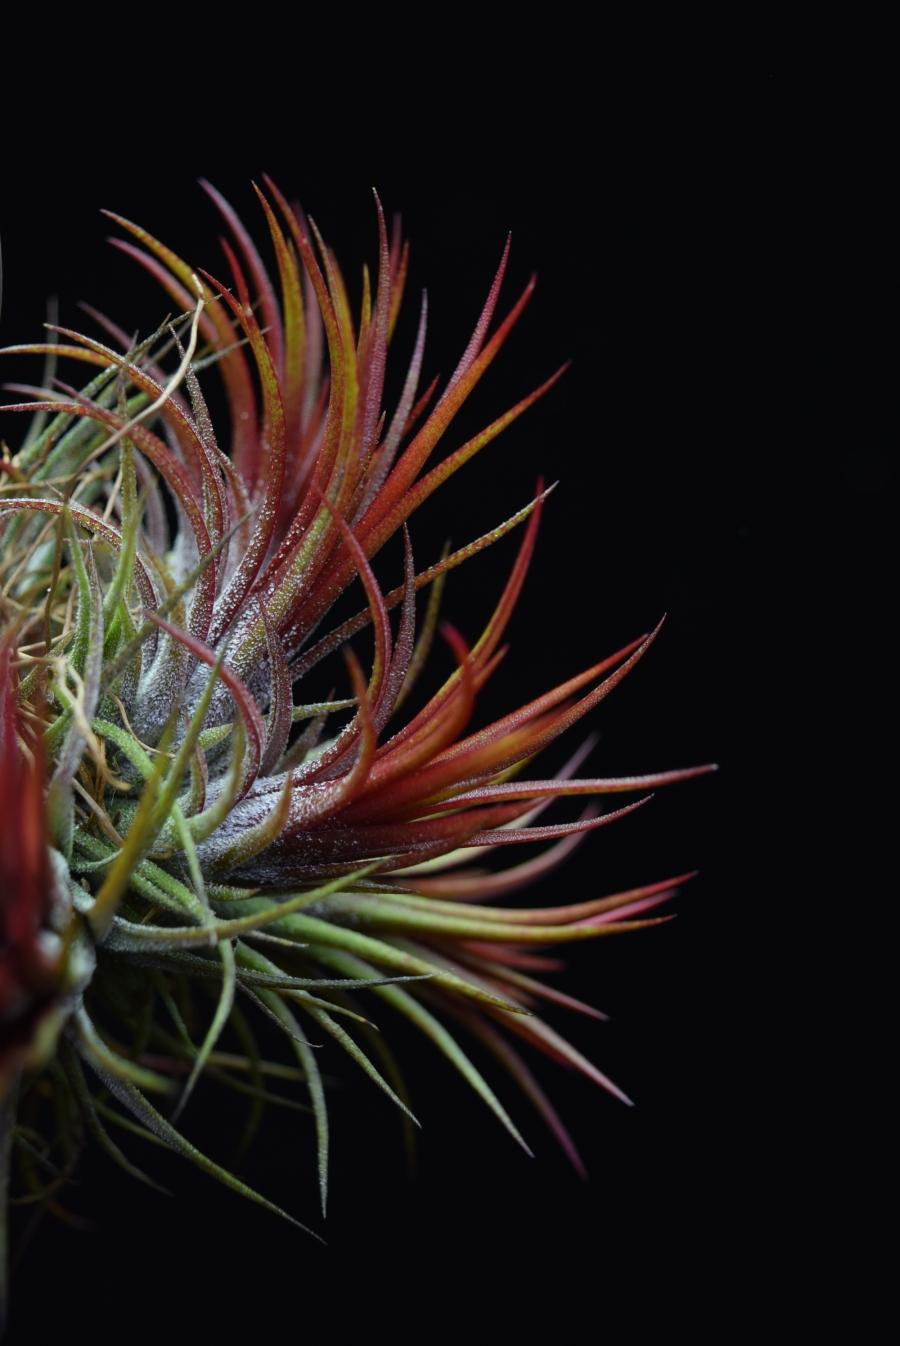 Two Tillandsia ionantha 'Fuego' plants displaying intense red coloration and trichomes on the outside of the leaves.